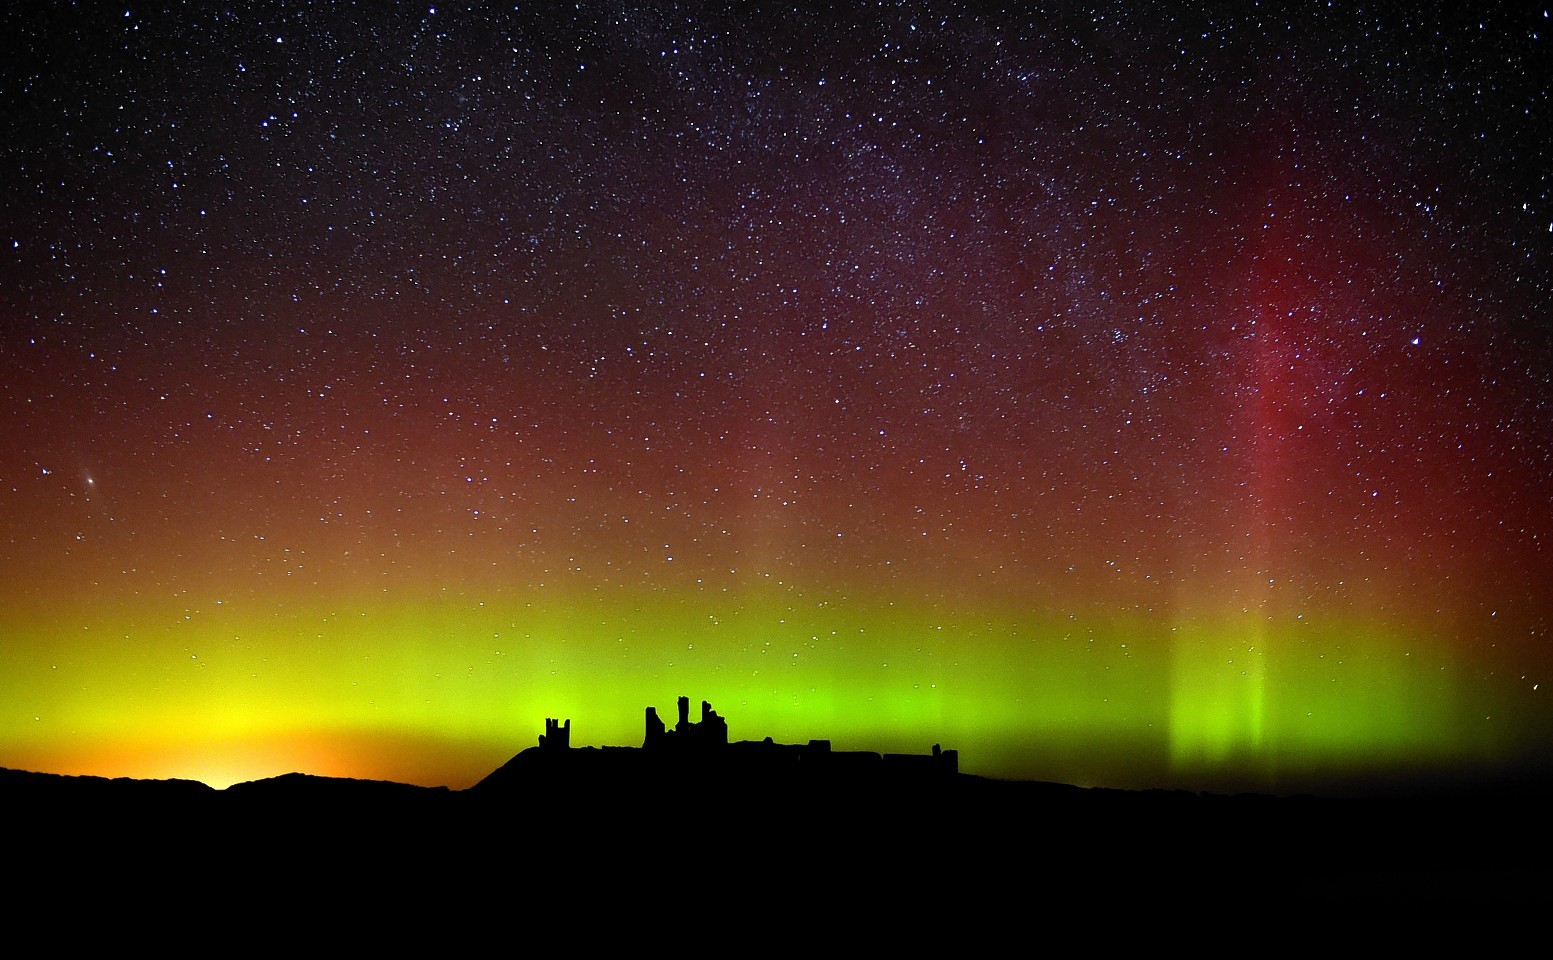 The Northern Lights will be visible from some parts of the UK this evening